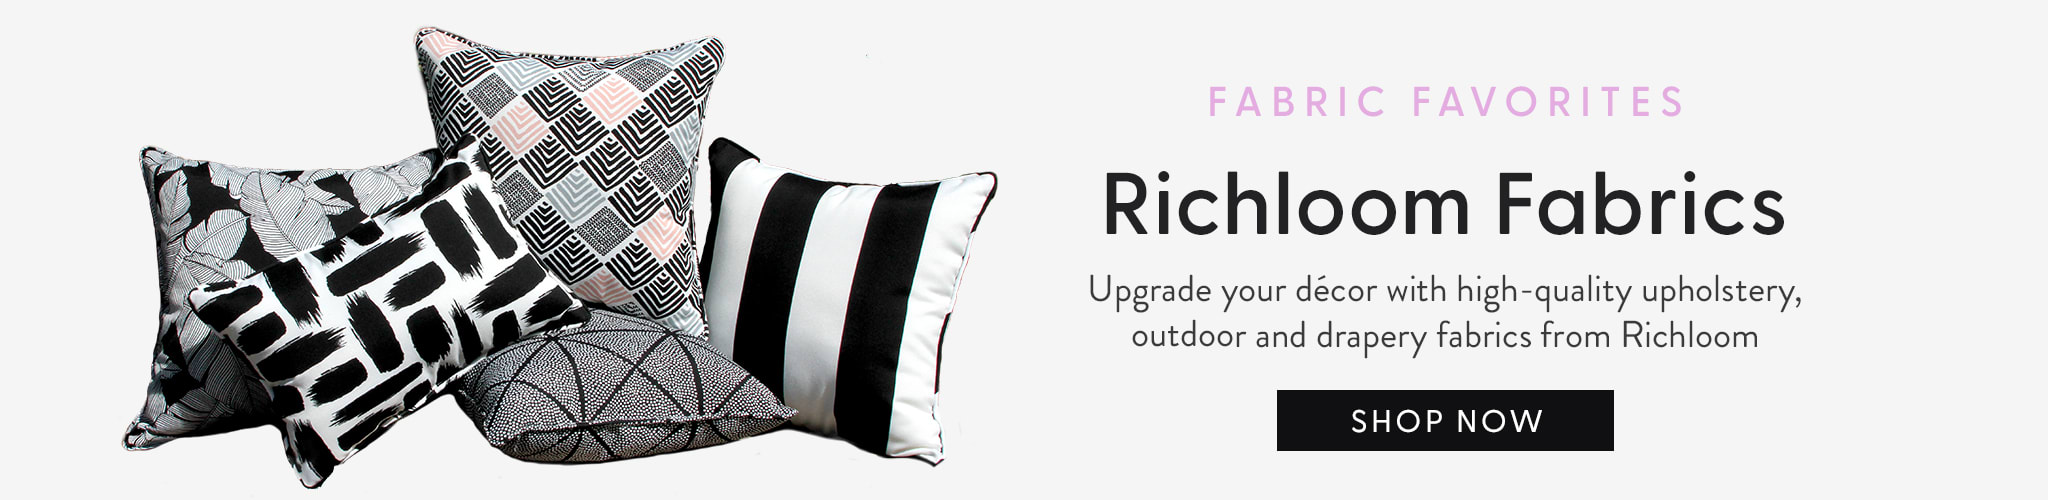 Fabric Favorites. Richloom Fabrics- Upgrade your decor with high-quality upholstery, outdoor, and drapery fabrics from Richloom